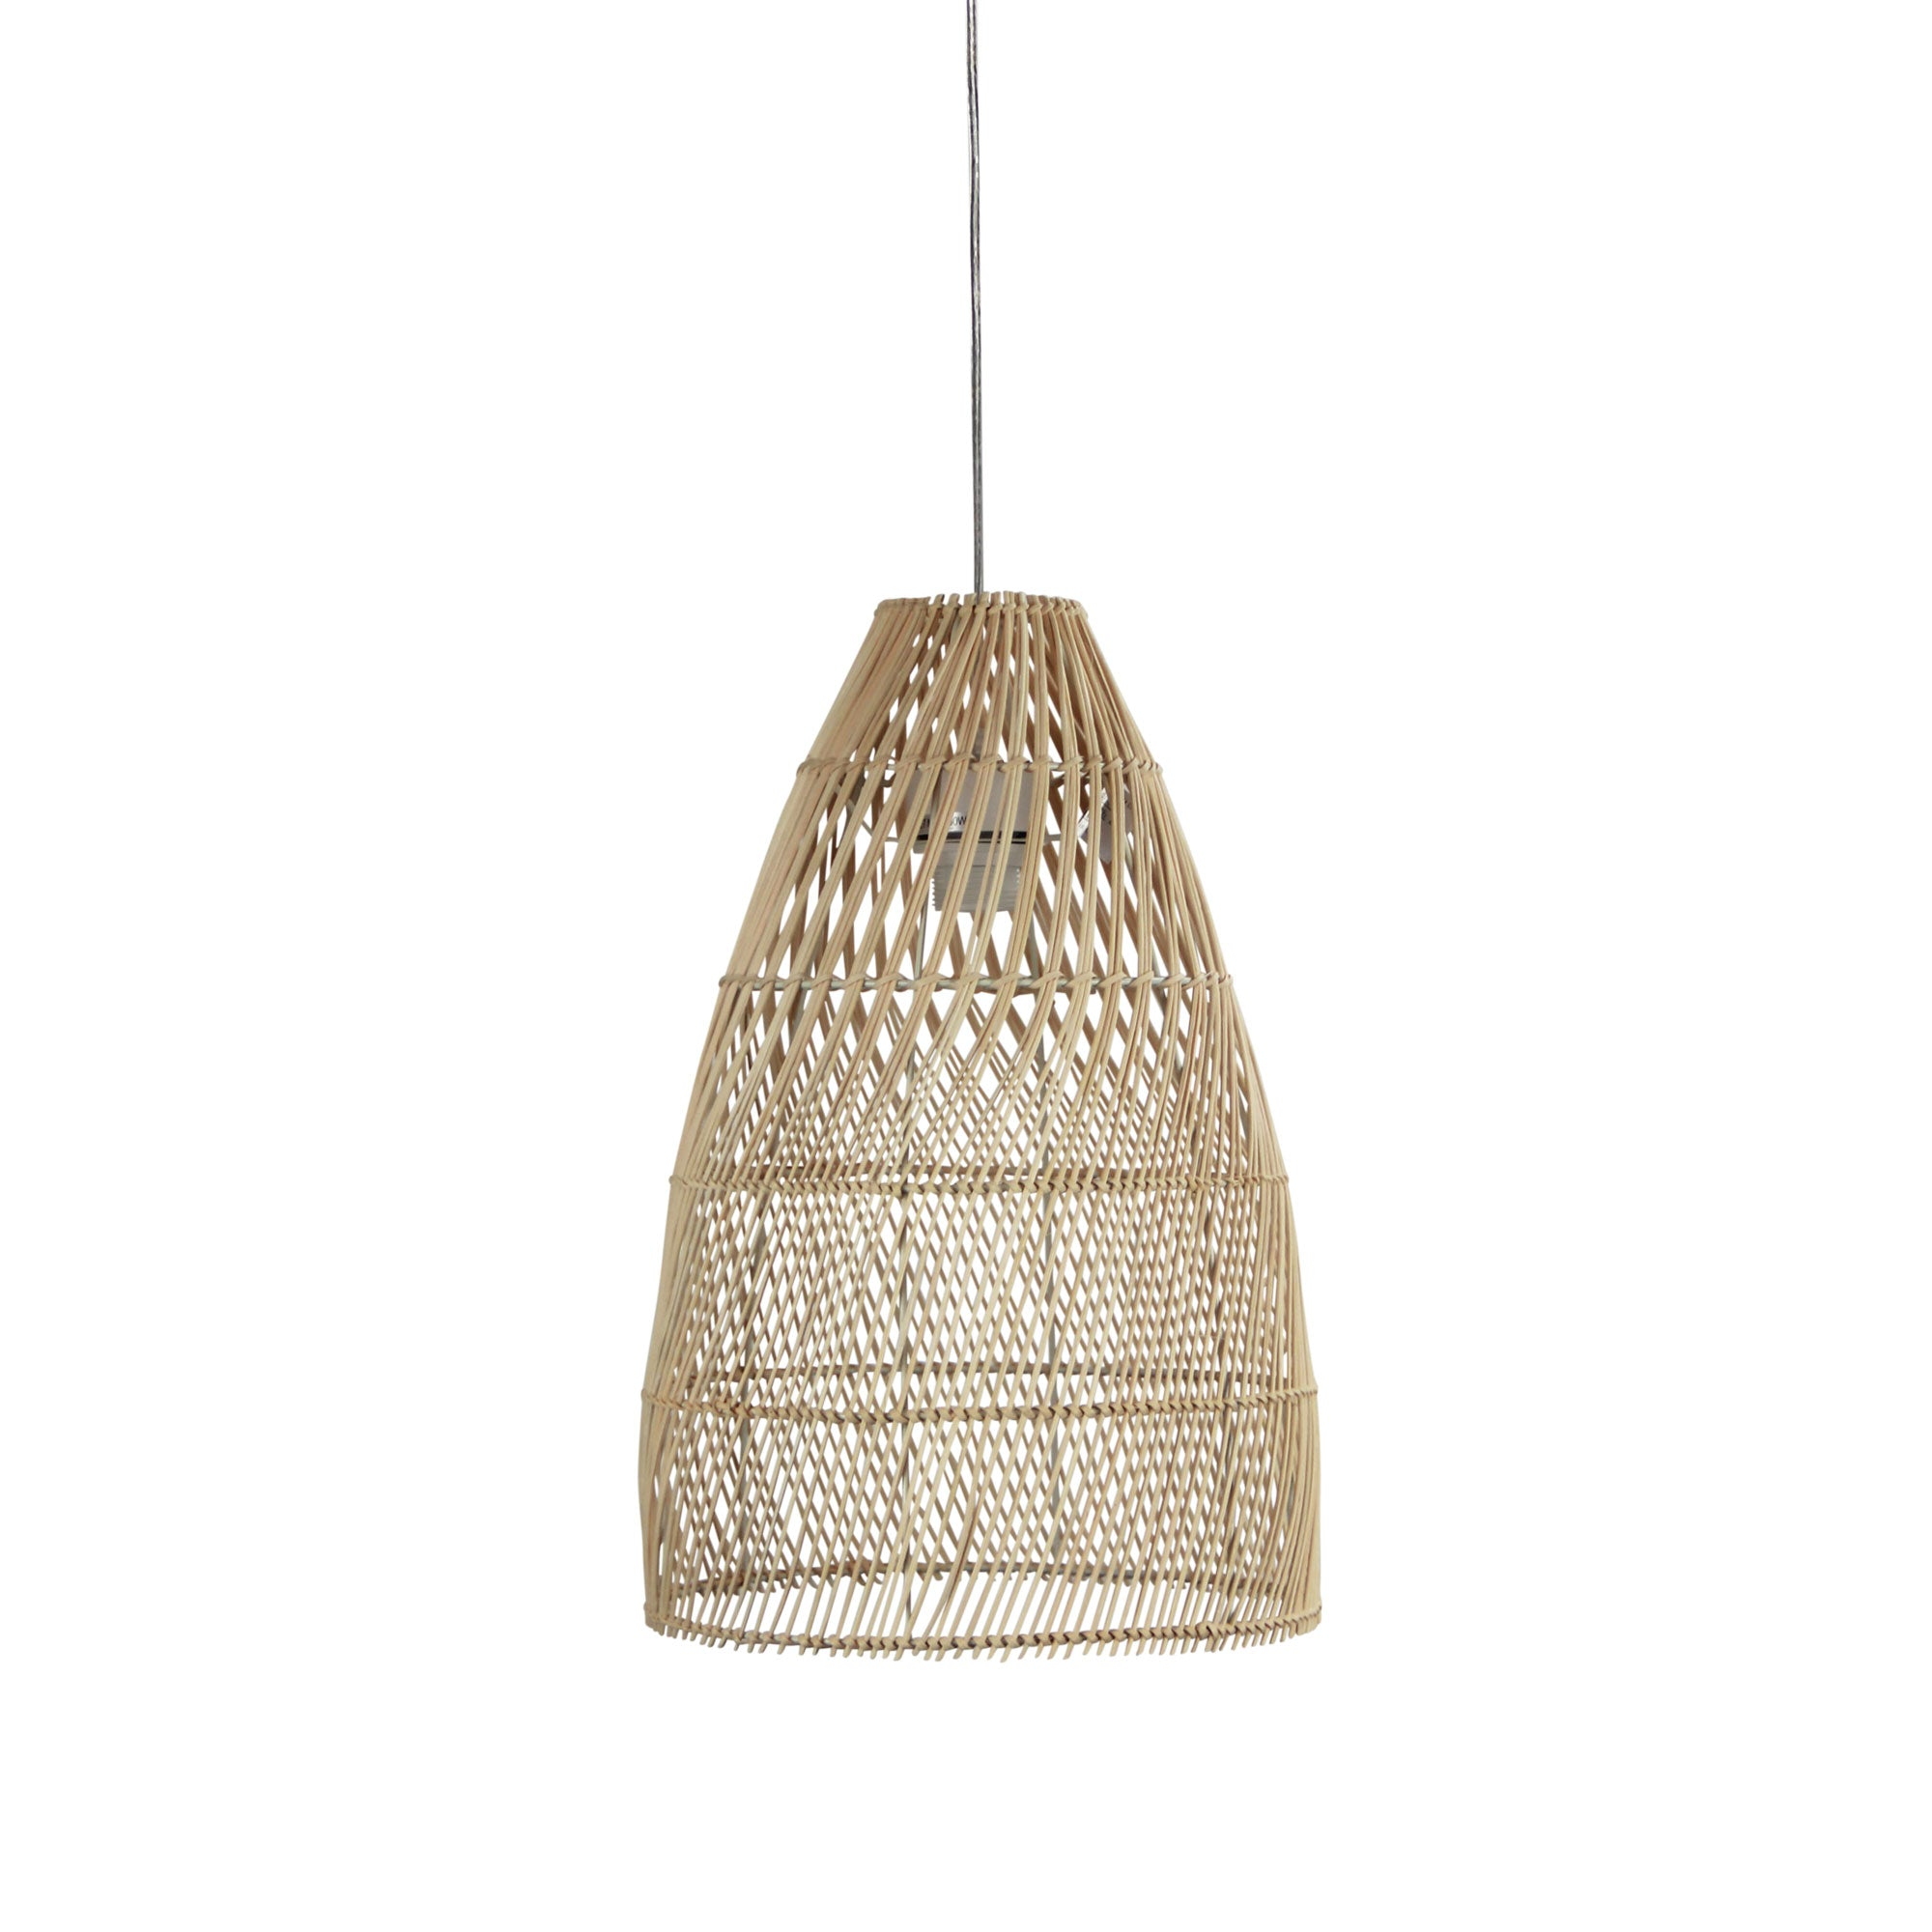 Carmel Rattan Pendant (2 Sizes)